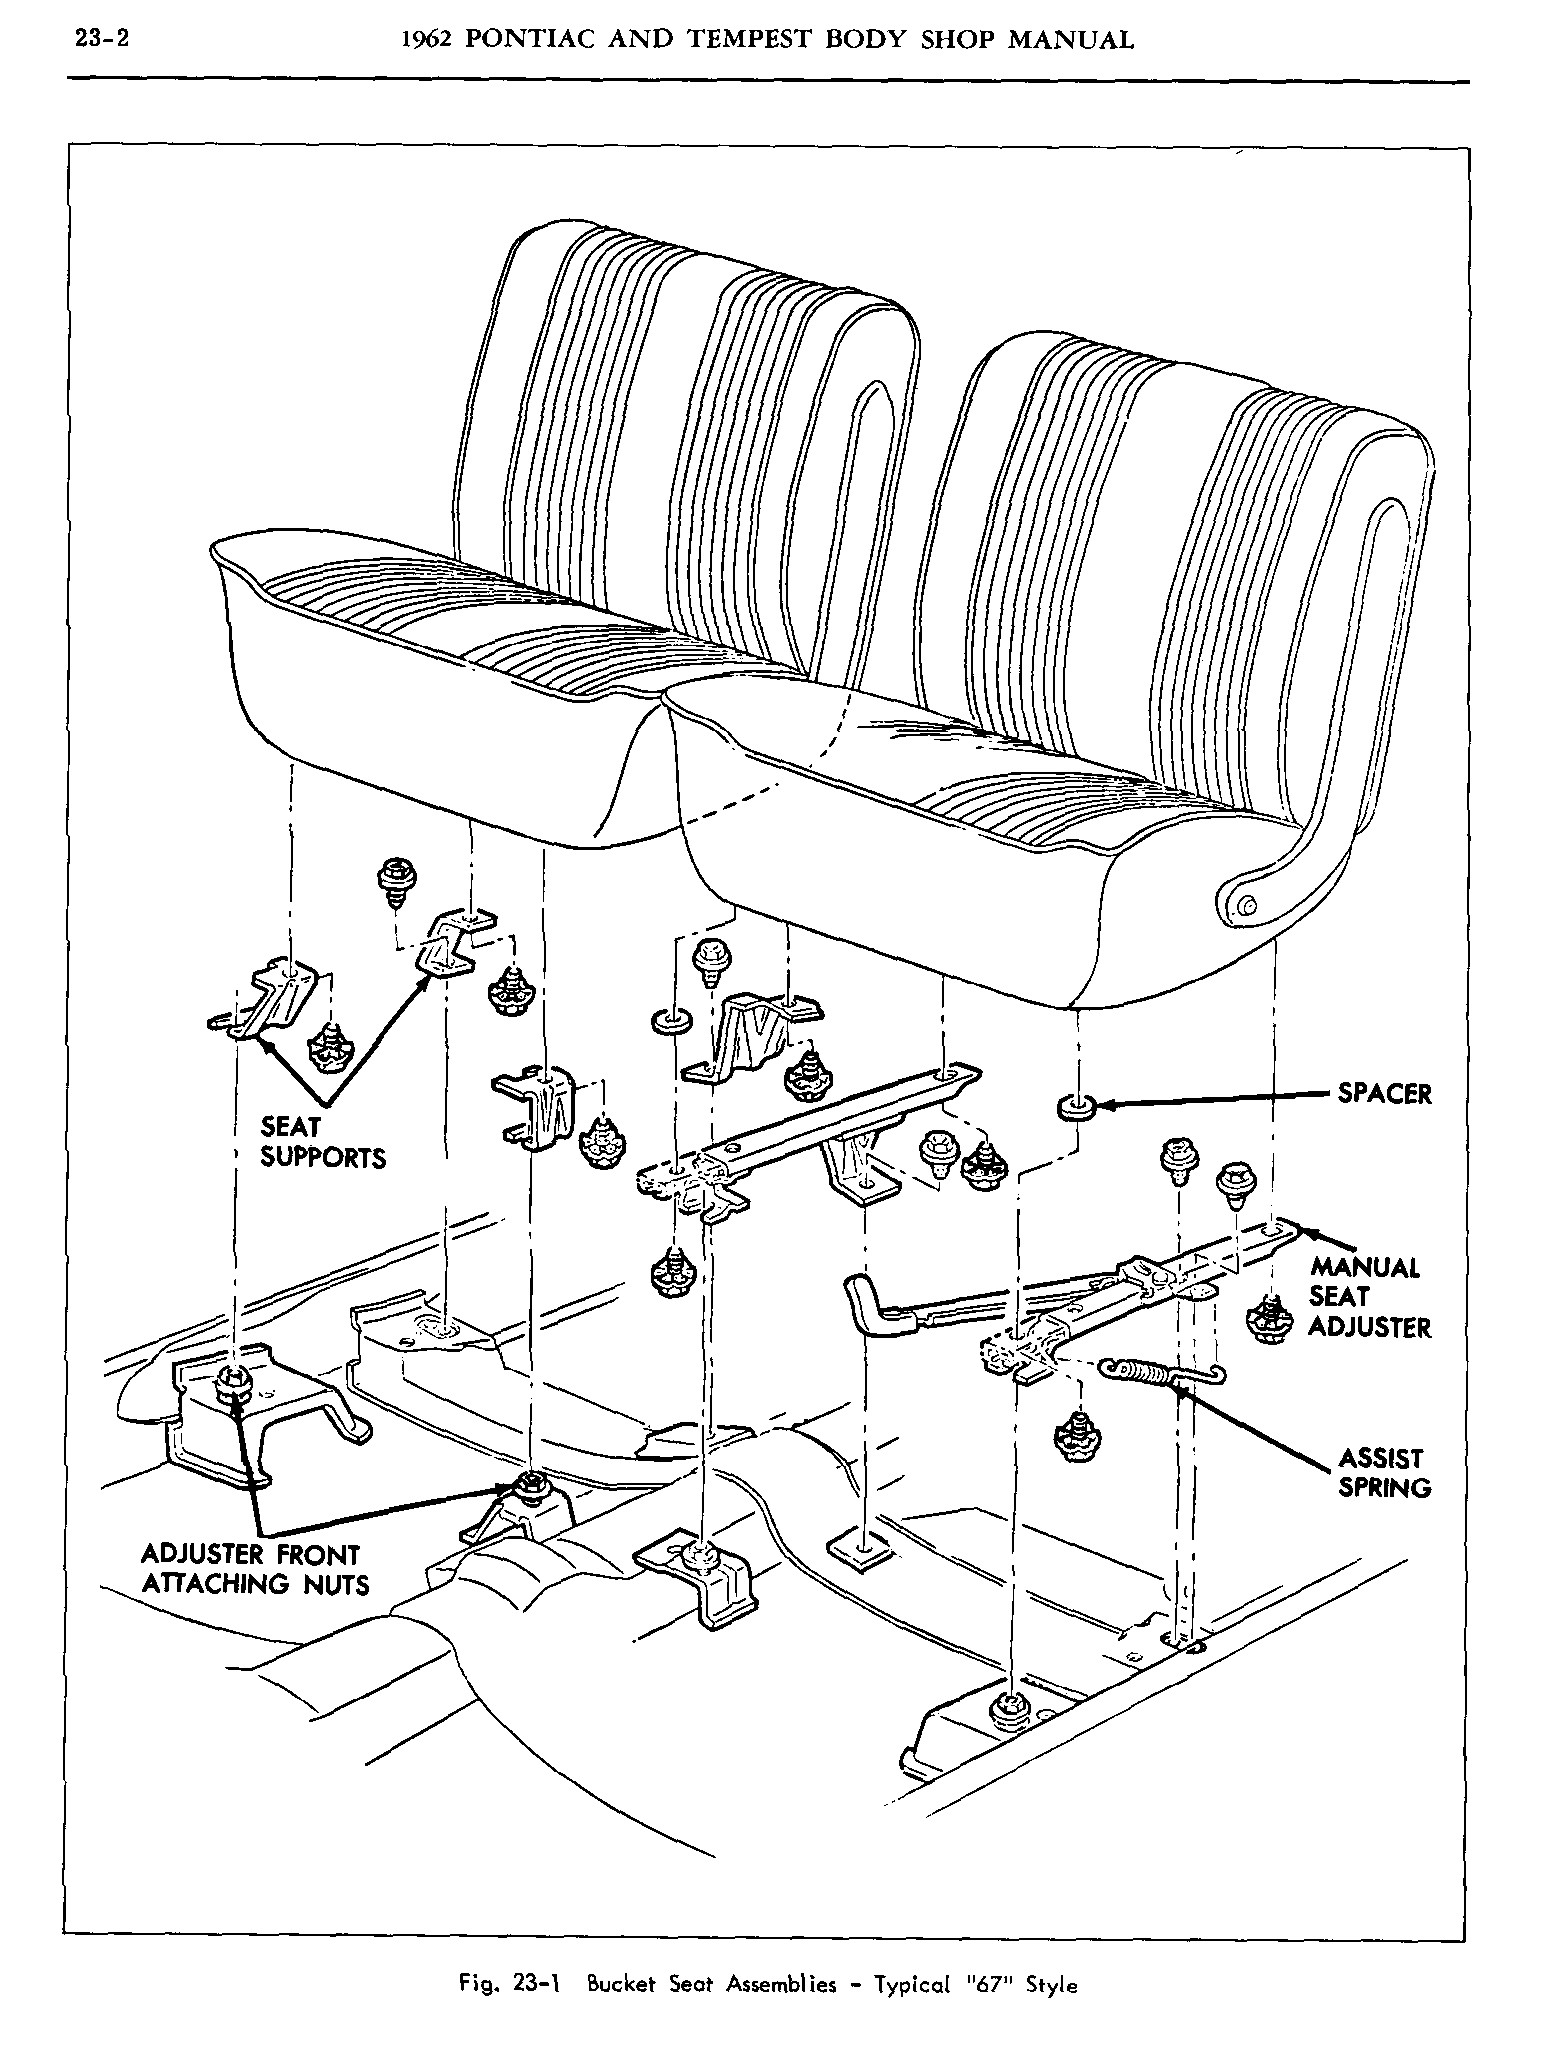 1962 Pontiac Shop Manual- Pontiac and Tempest Bucket Seats